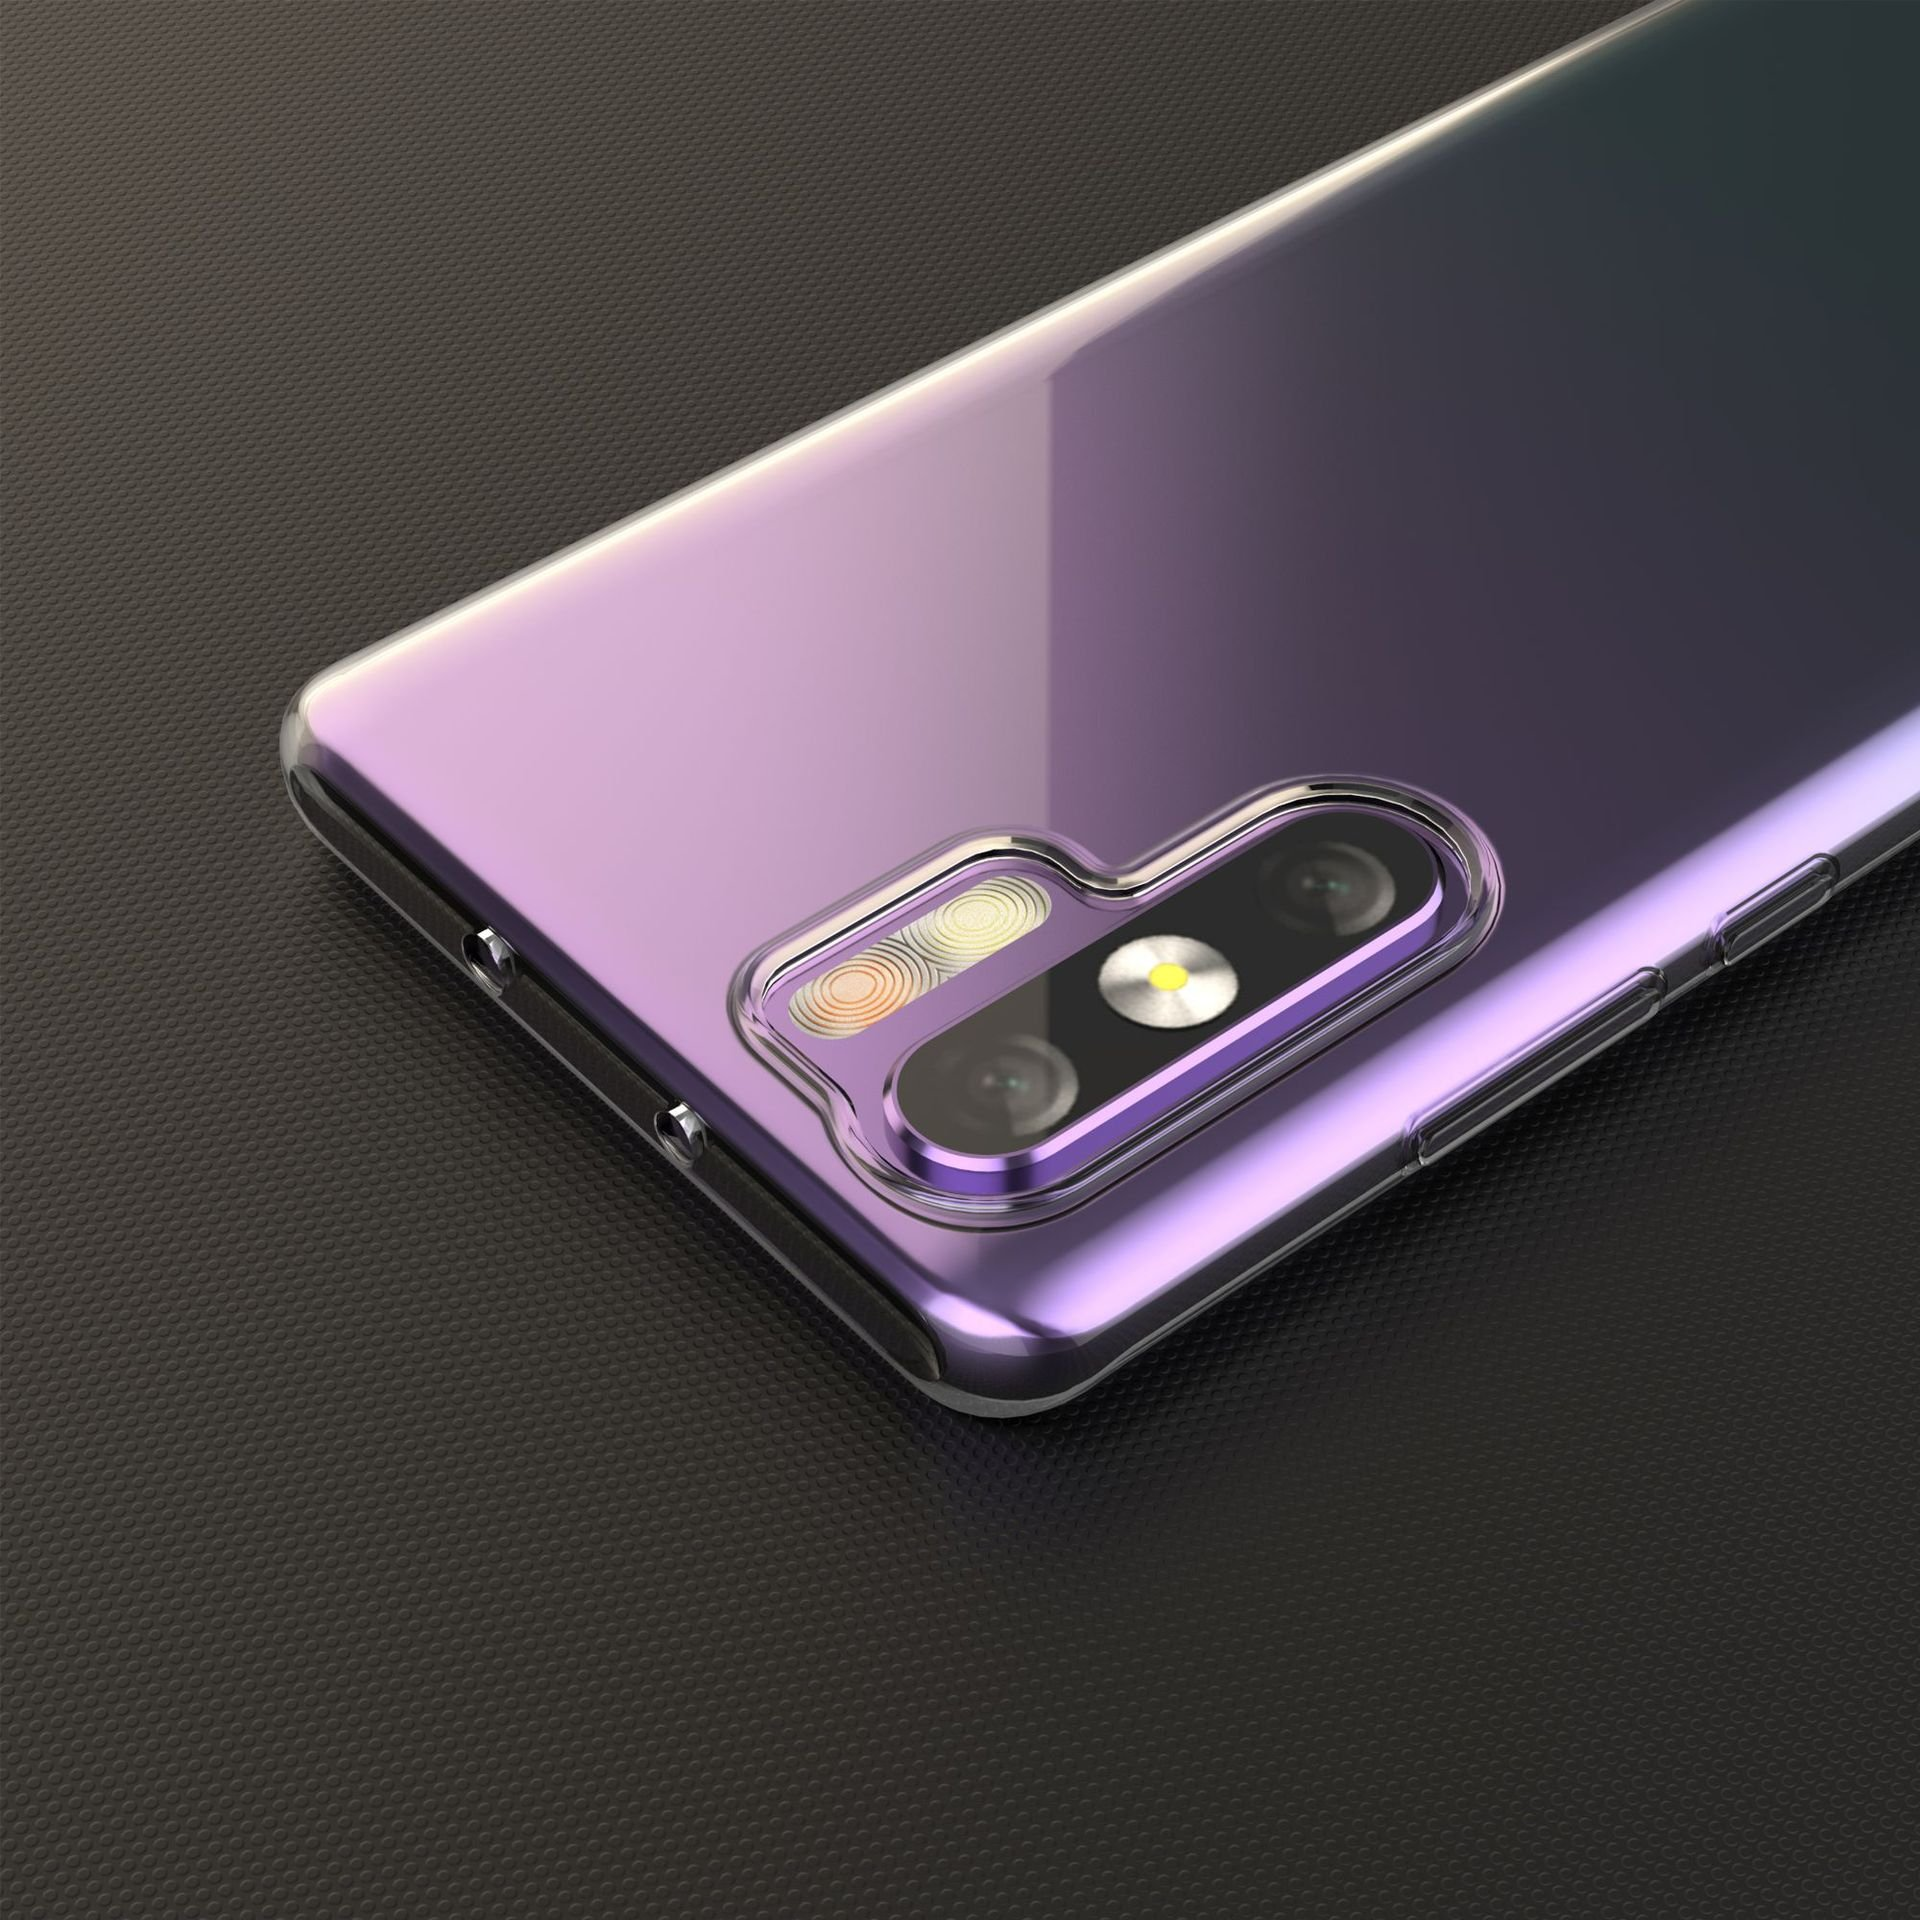 Sony IMX607 Specifications and Huawei P30 Pro Exposure 3